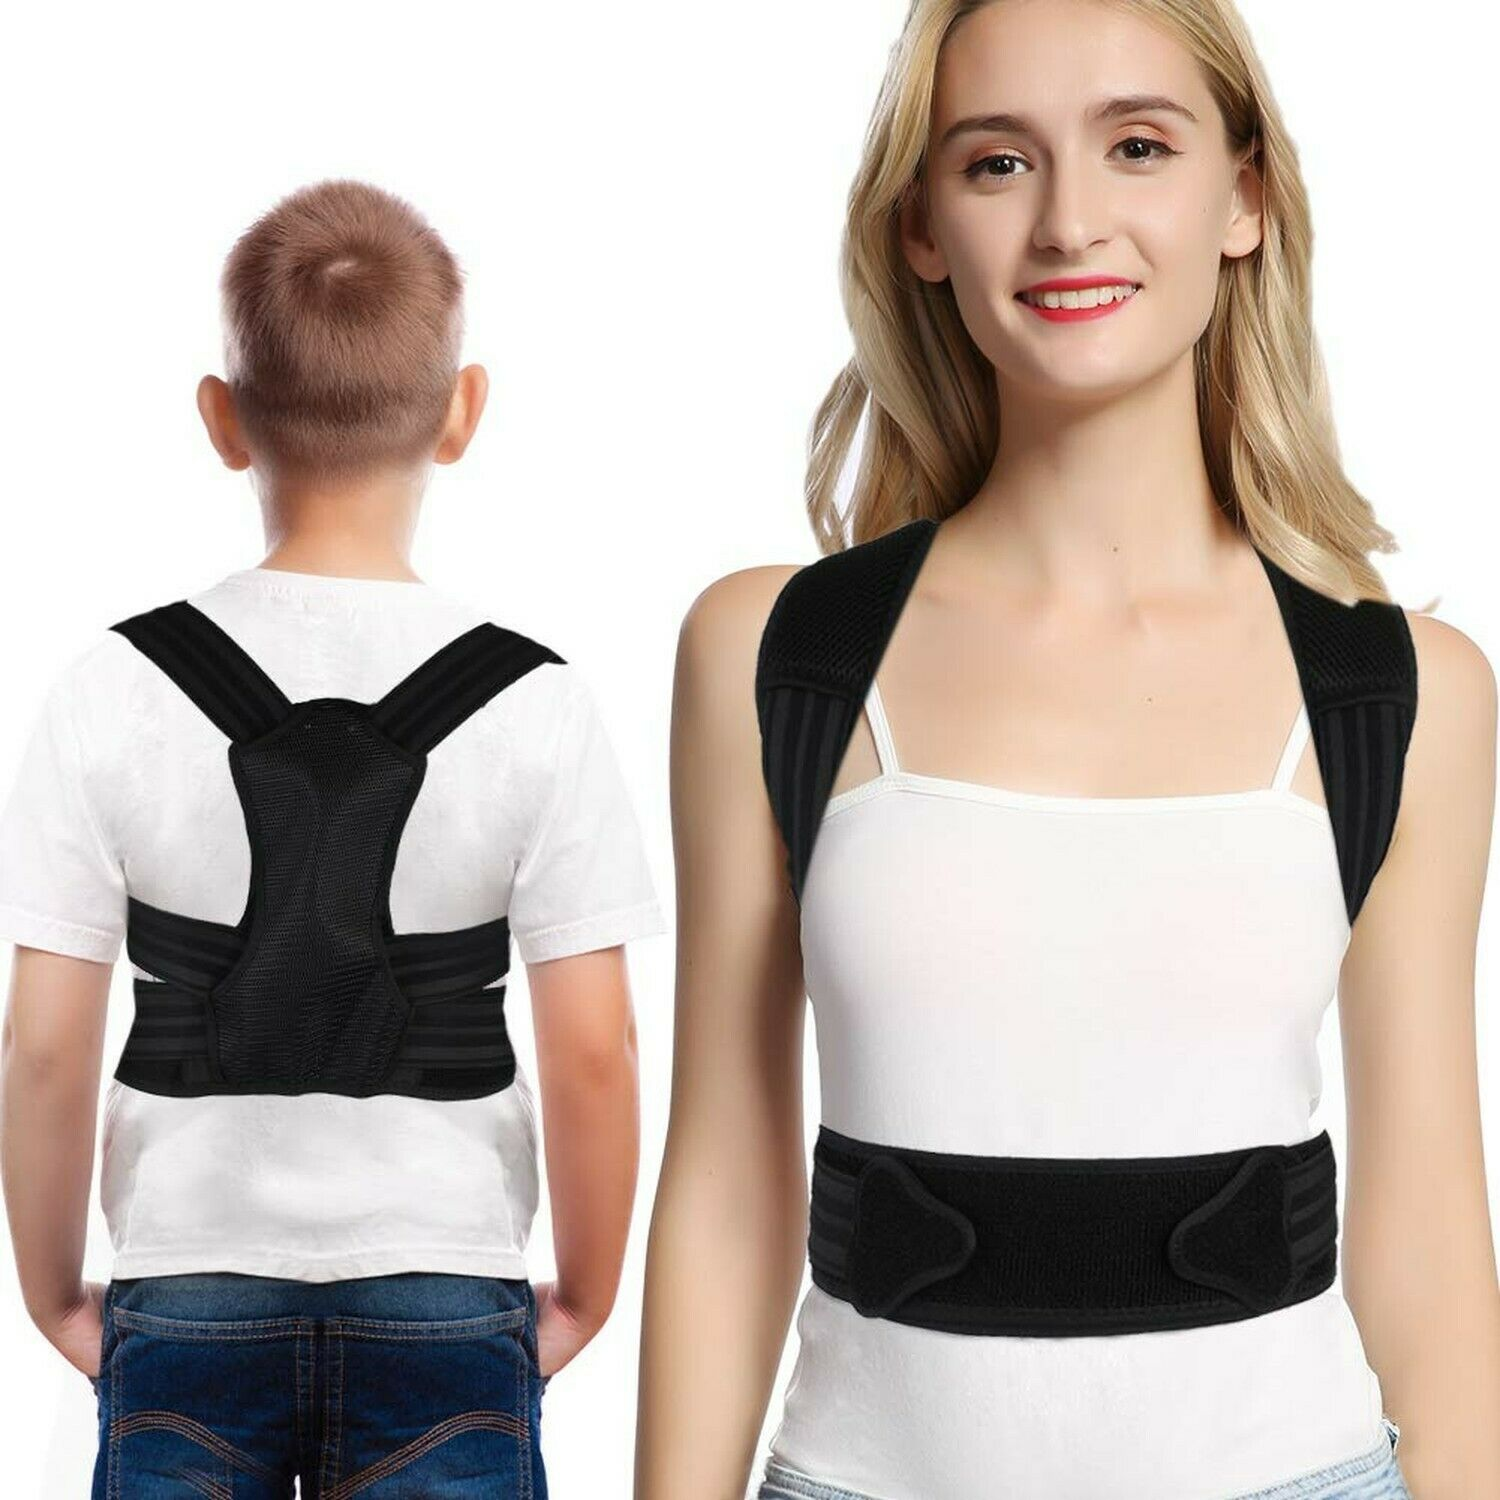 DOACT Back Posture Corrector Brace Under Clothes for Kids an